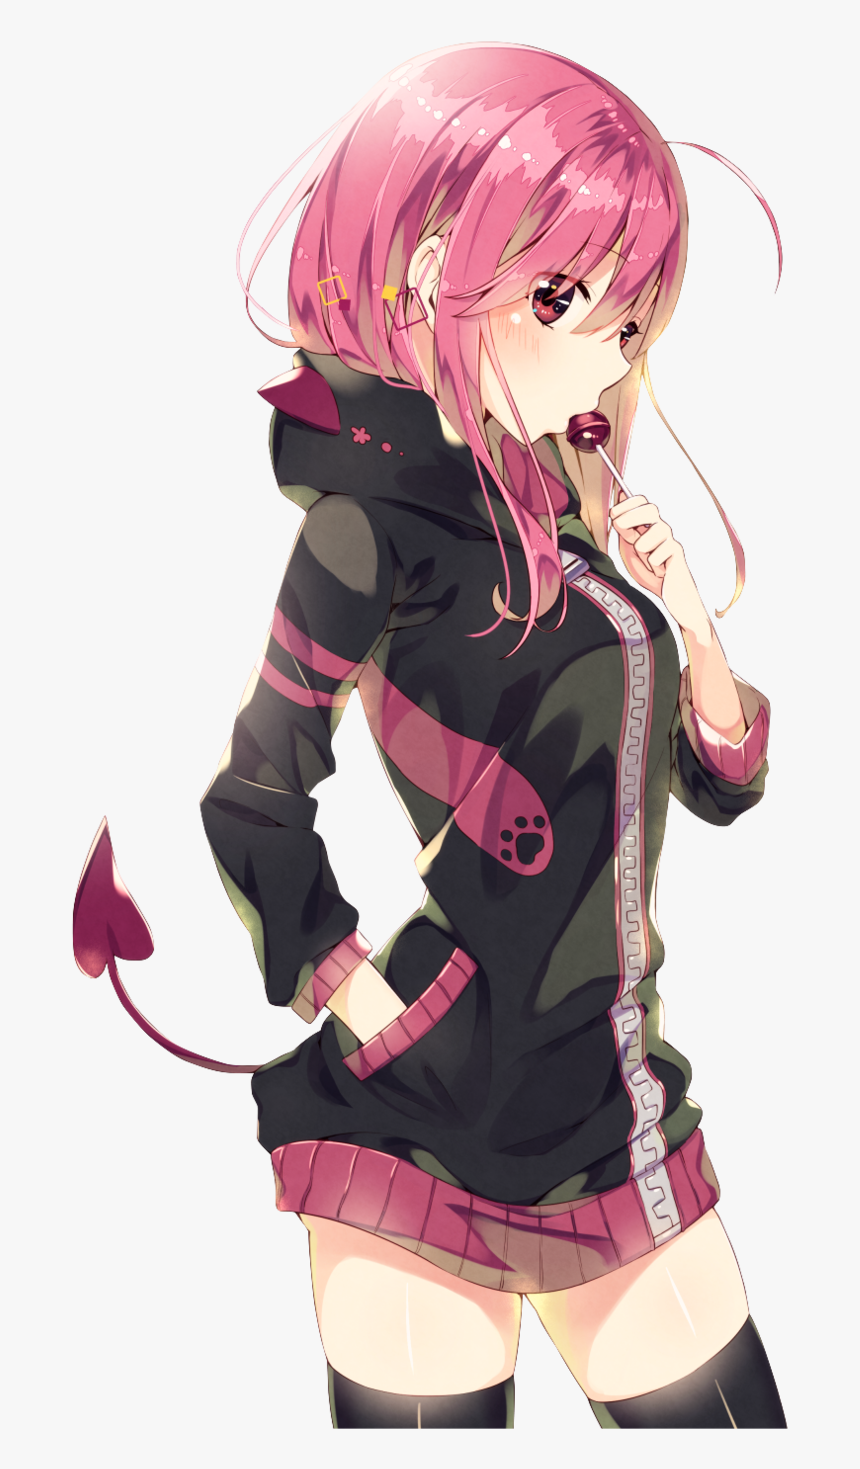 Anime Girl Hot Pink Hair , Png Download, Transparent Png